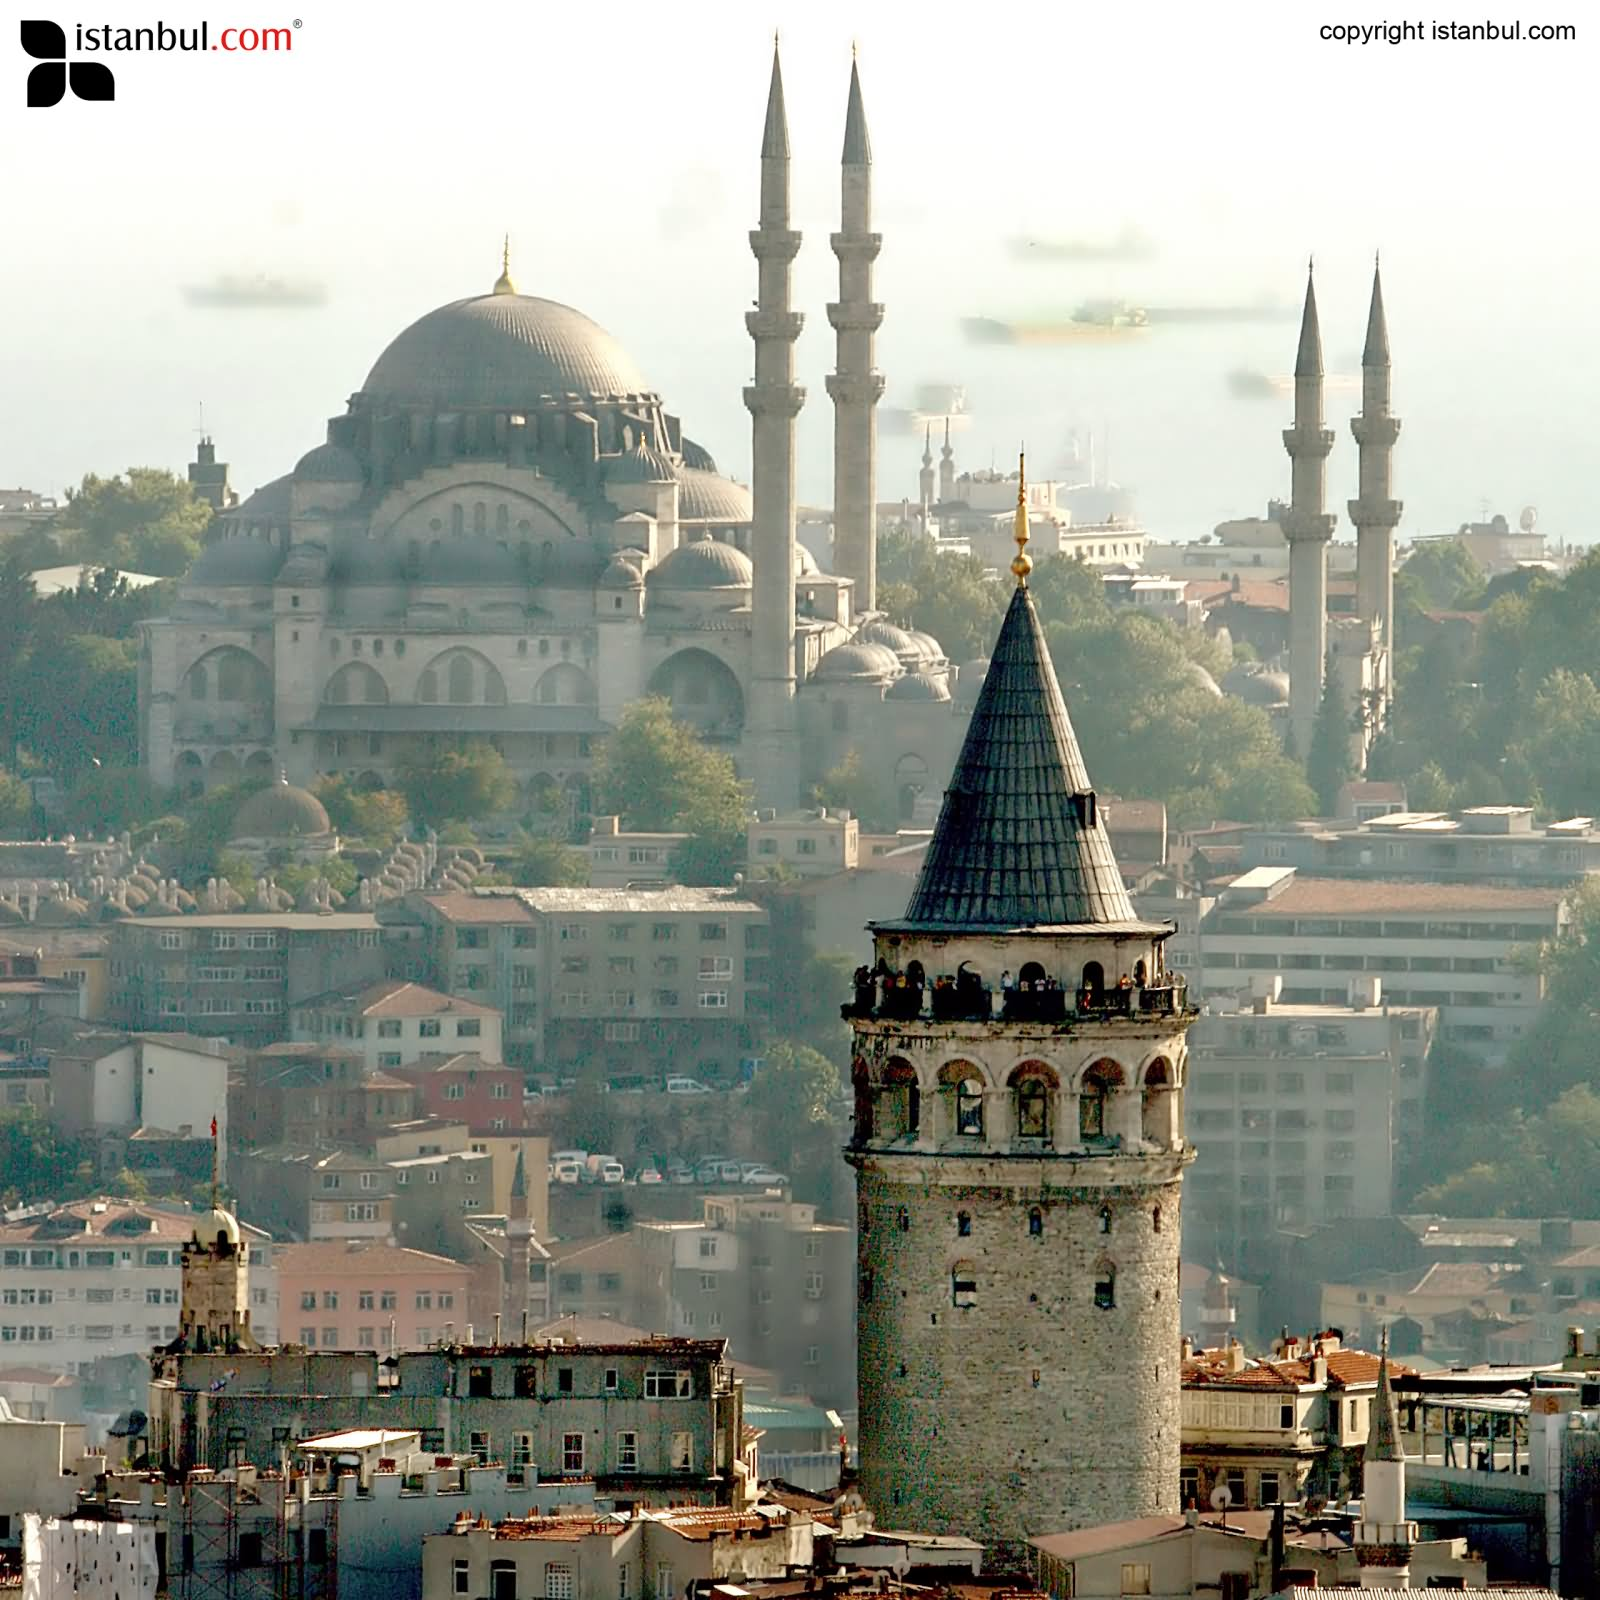 view from the galata tower in istanbul. Black Bedroom Furniture Sets. Home Design Ideas